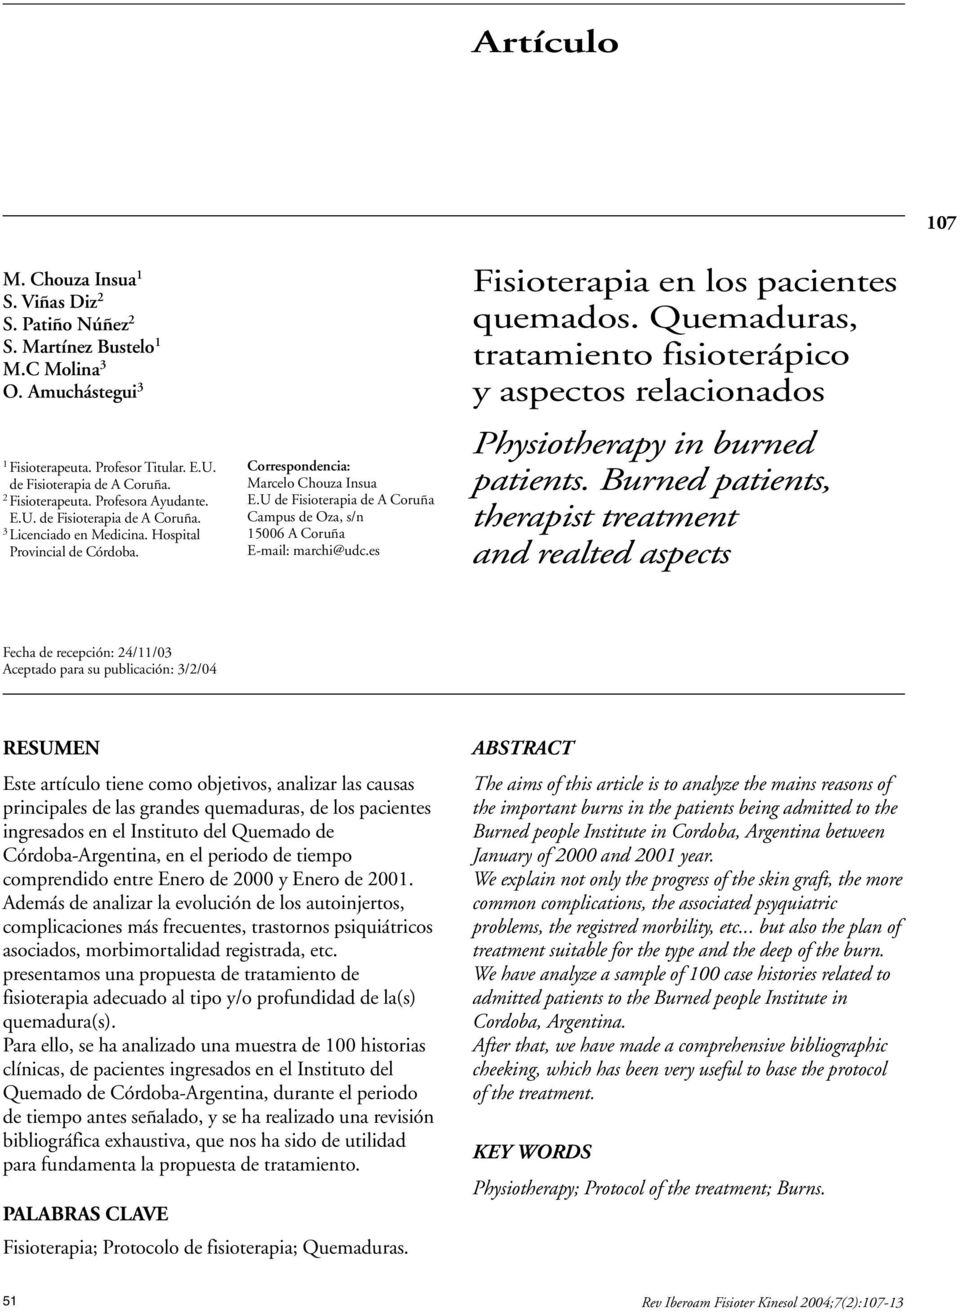 Artículo. KEY WORDS Physiotherapy; Protocol of the treatment; Burns ...